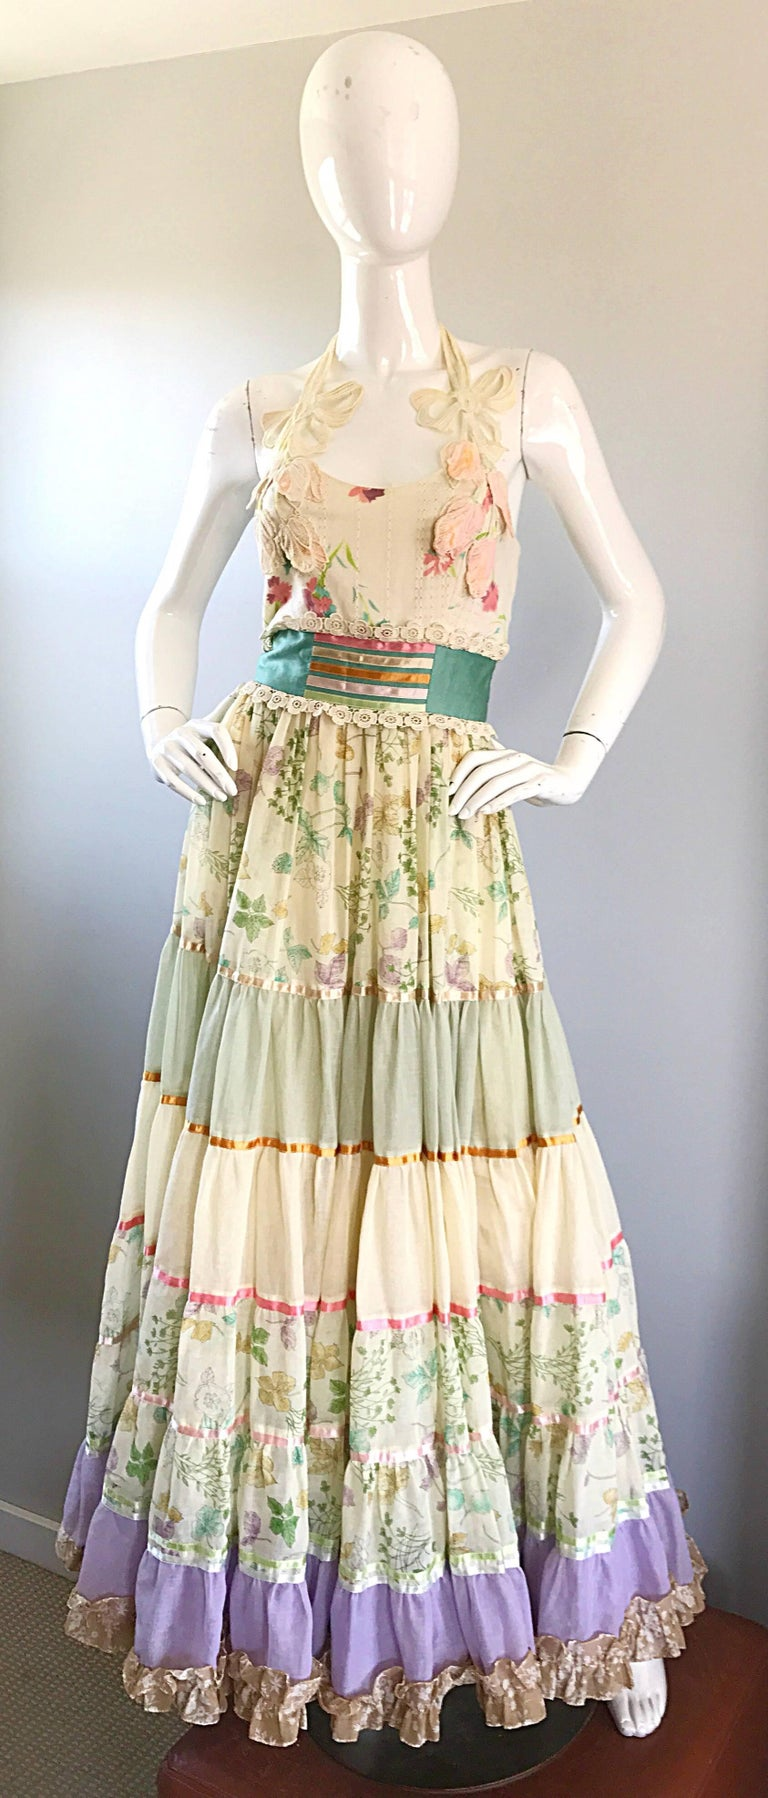 Gorgeous and rare early 1970s GIORGIO DI 'SANT ANGELO boho halter maxi dress! Features colorful floral prints throughout. Layers and layer of soft cotton voile provide great movement. Fitted bodice with a full skirt. Embroidered flower and ribbon